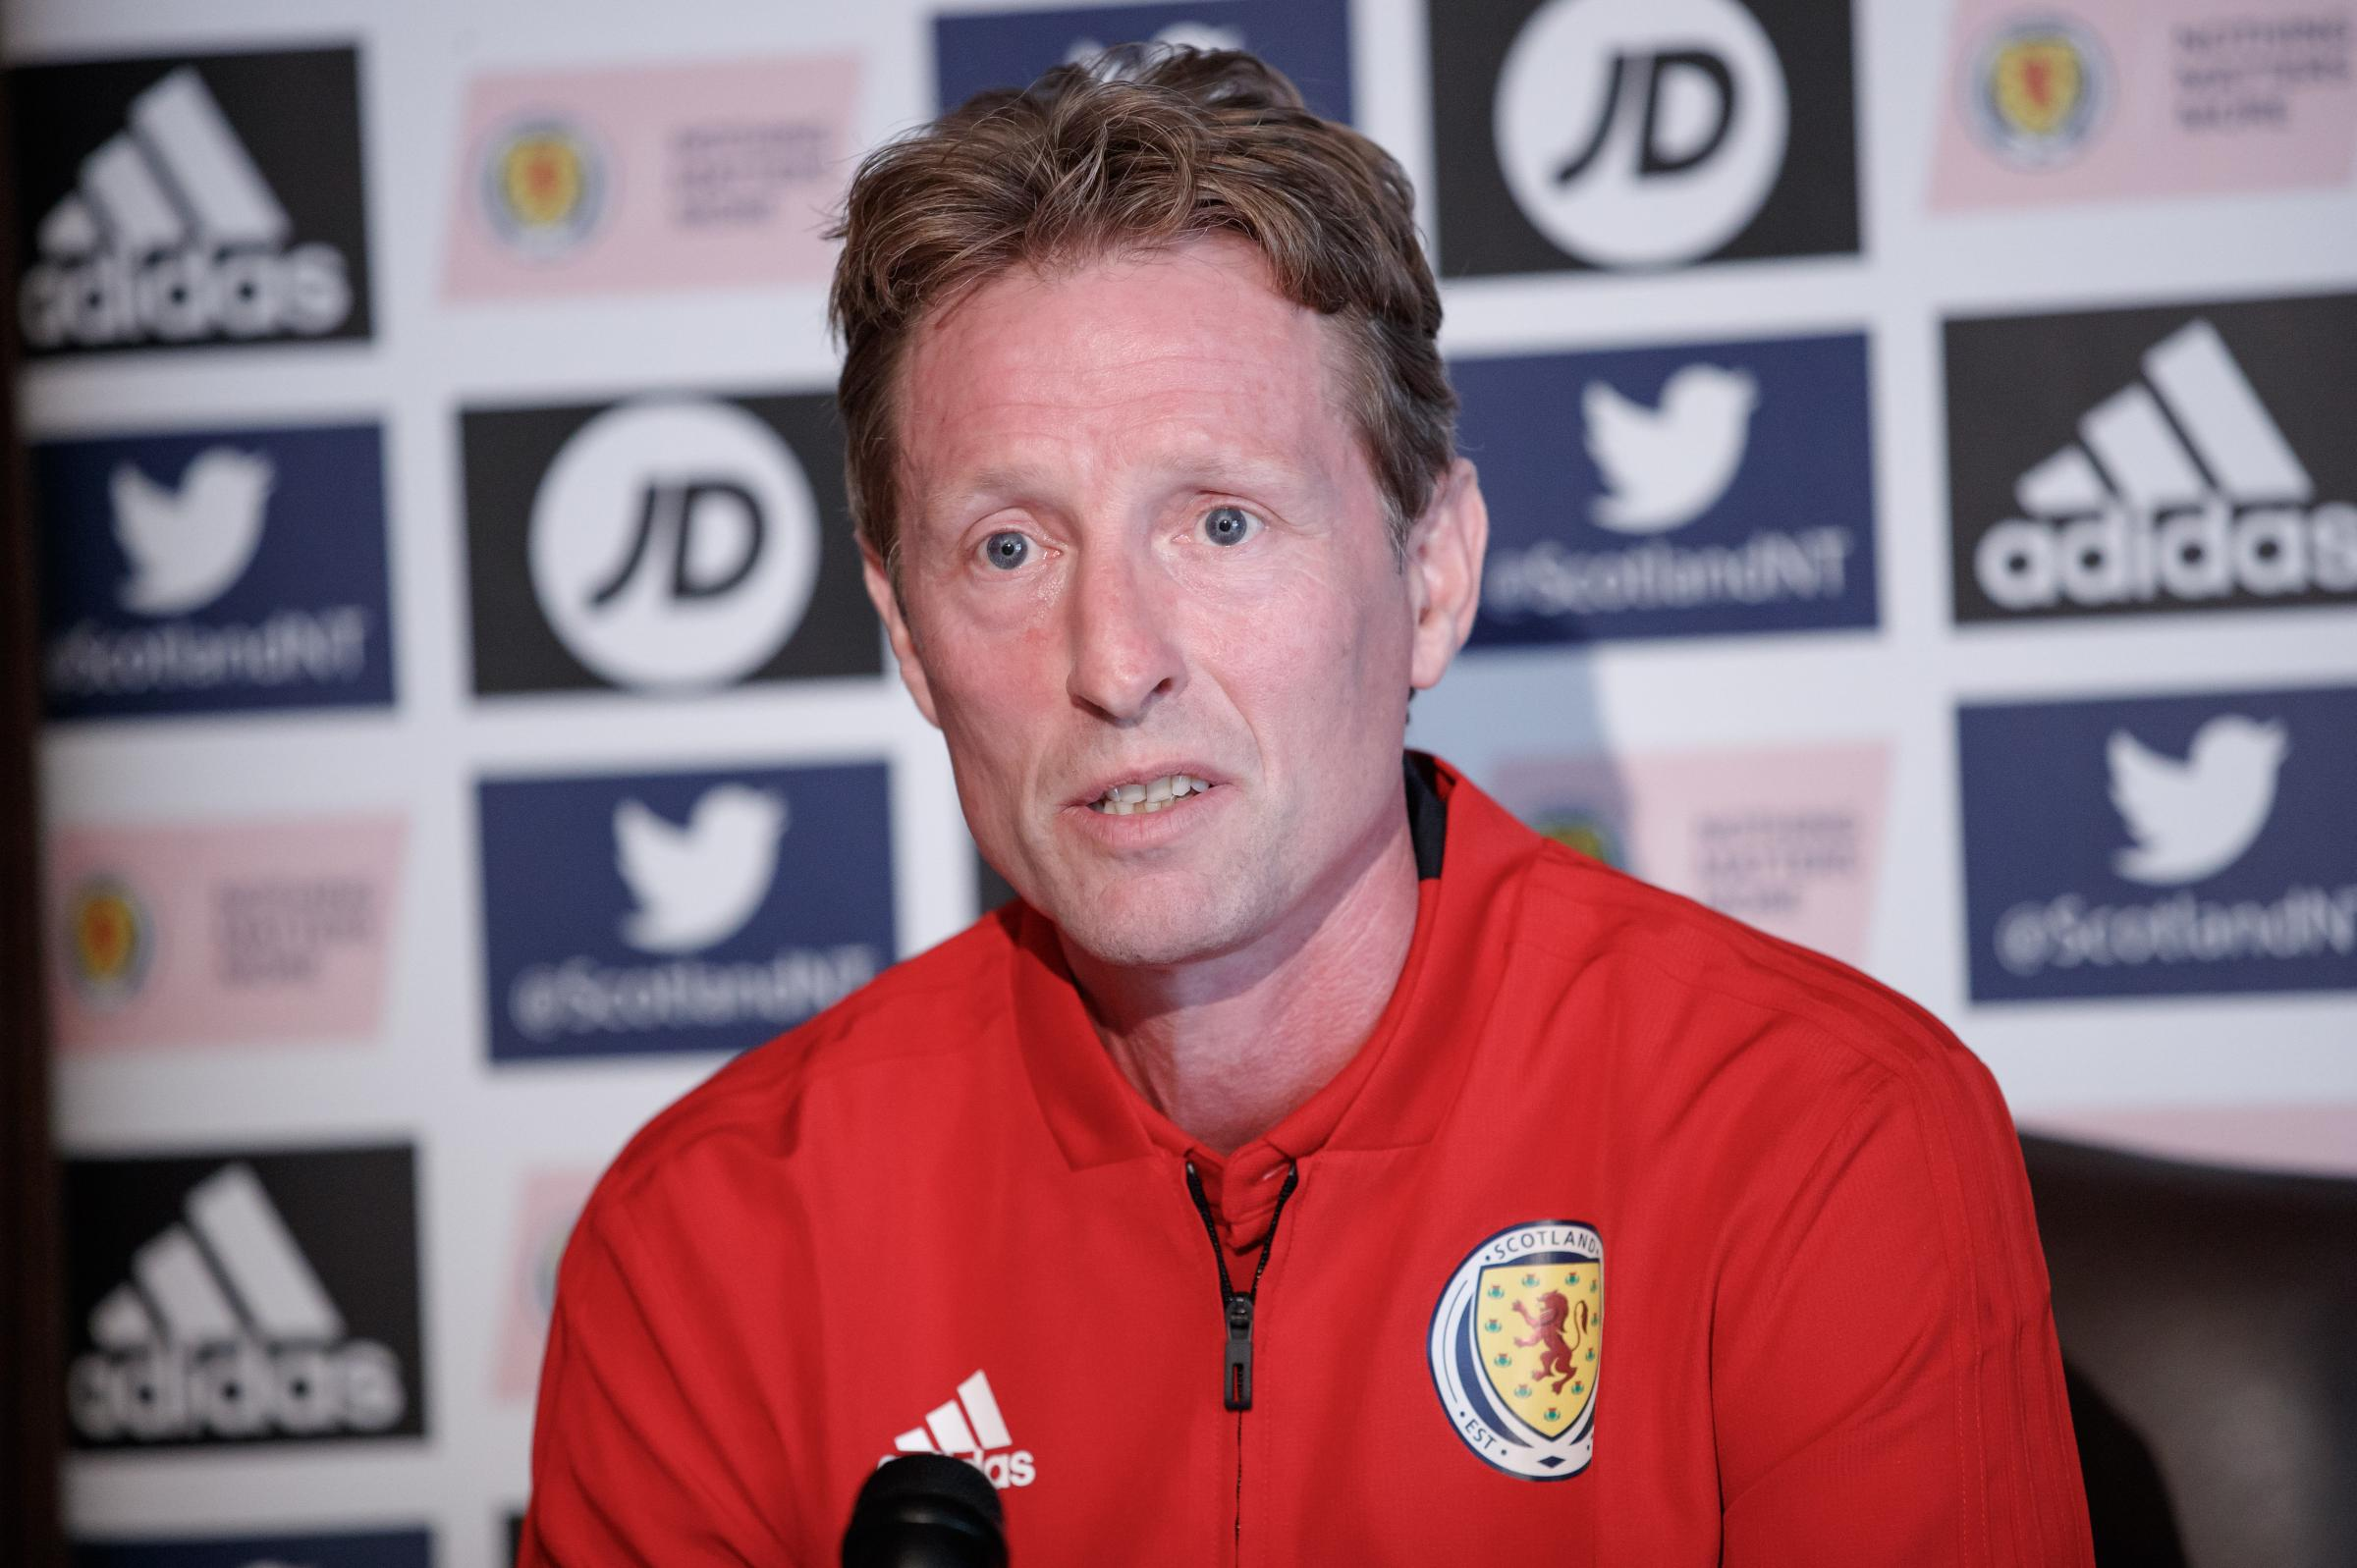 Scotland U21s must show they can pass Lithuania test, says manager Scot Gemmill